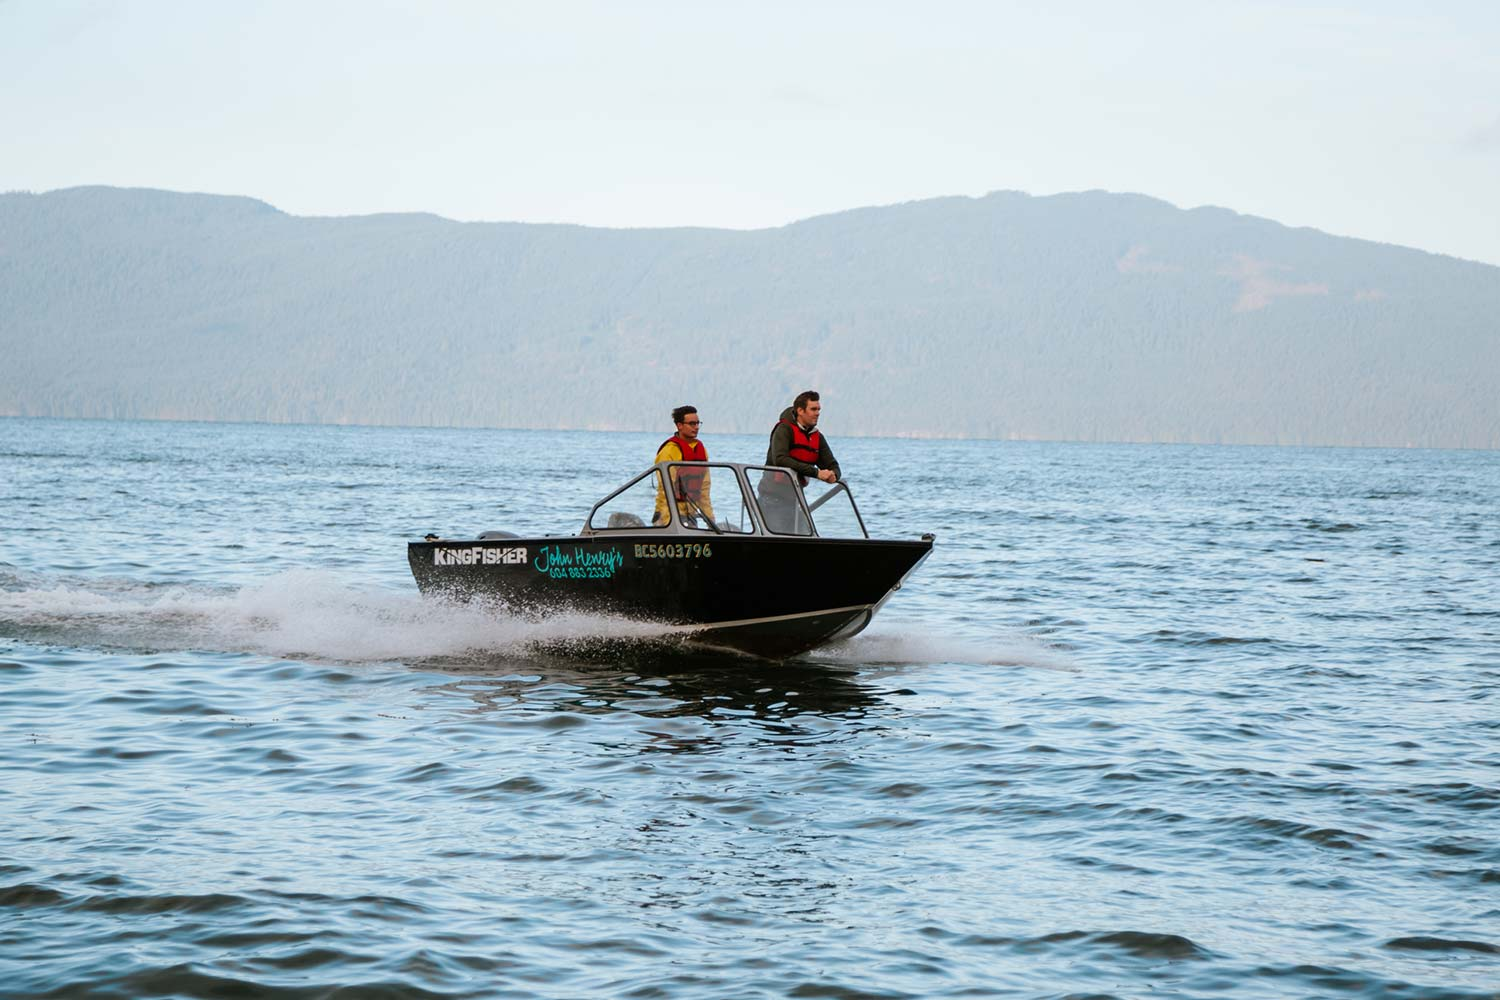 Two men in a boat on the Pender Harbour, boating around the 60 kilometers of shoreline and bays is a popular pastime.